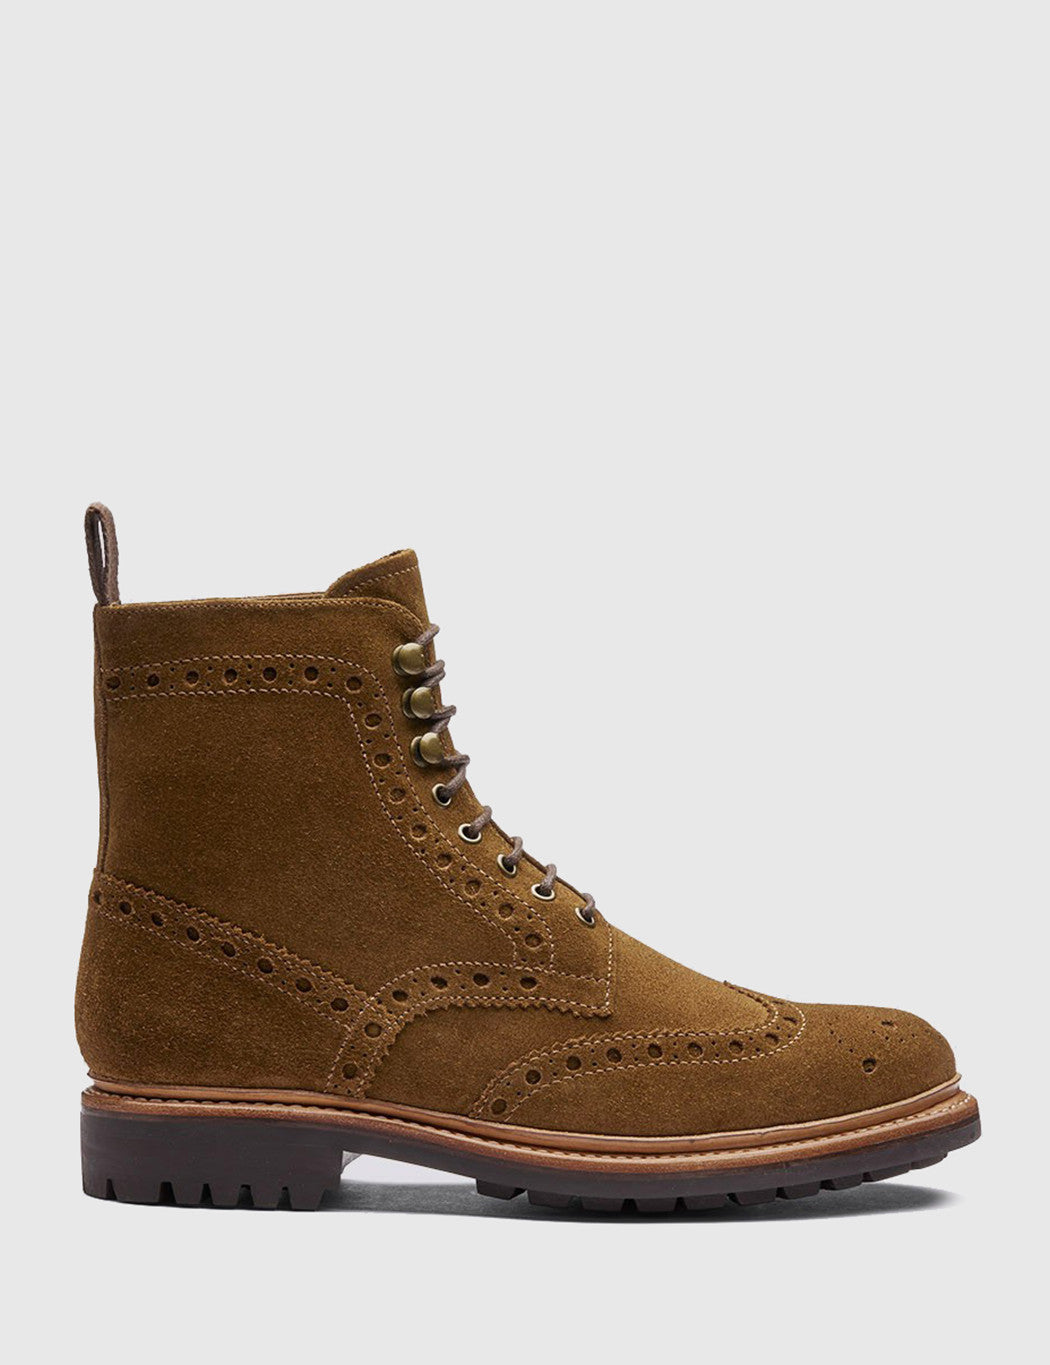 Grenson Fred Brogue Boot (Suede) - Snuff Brown